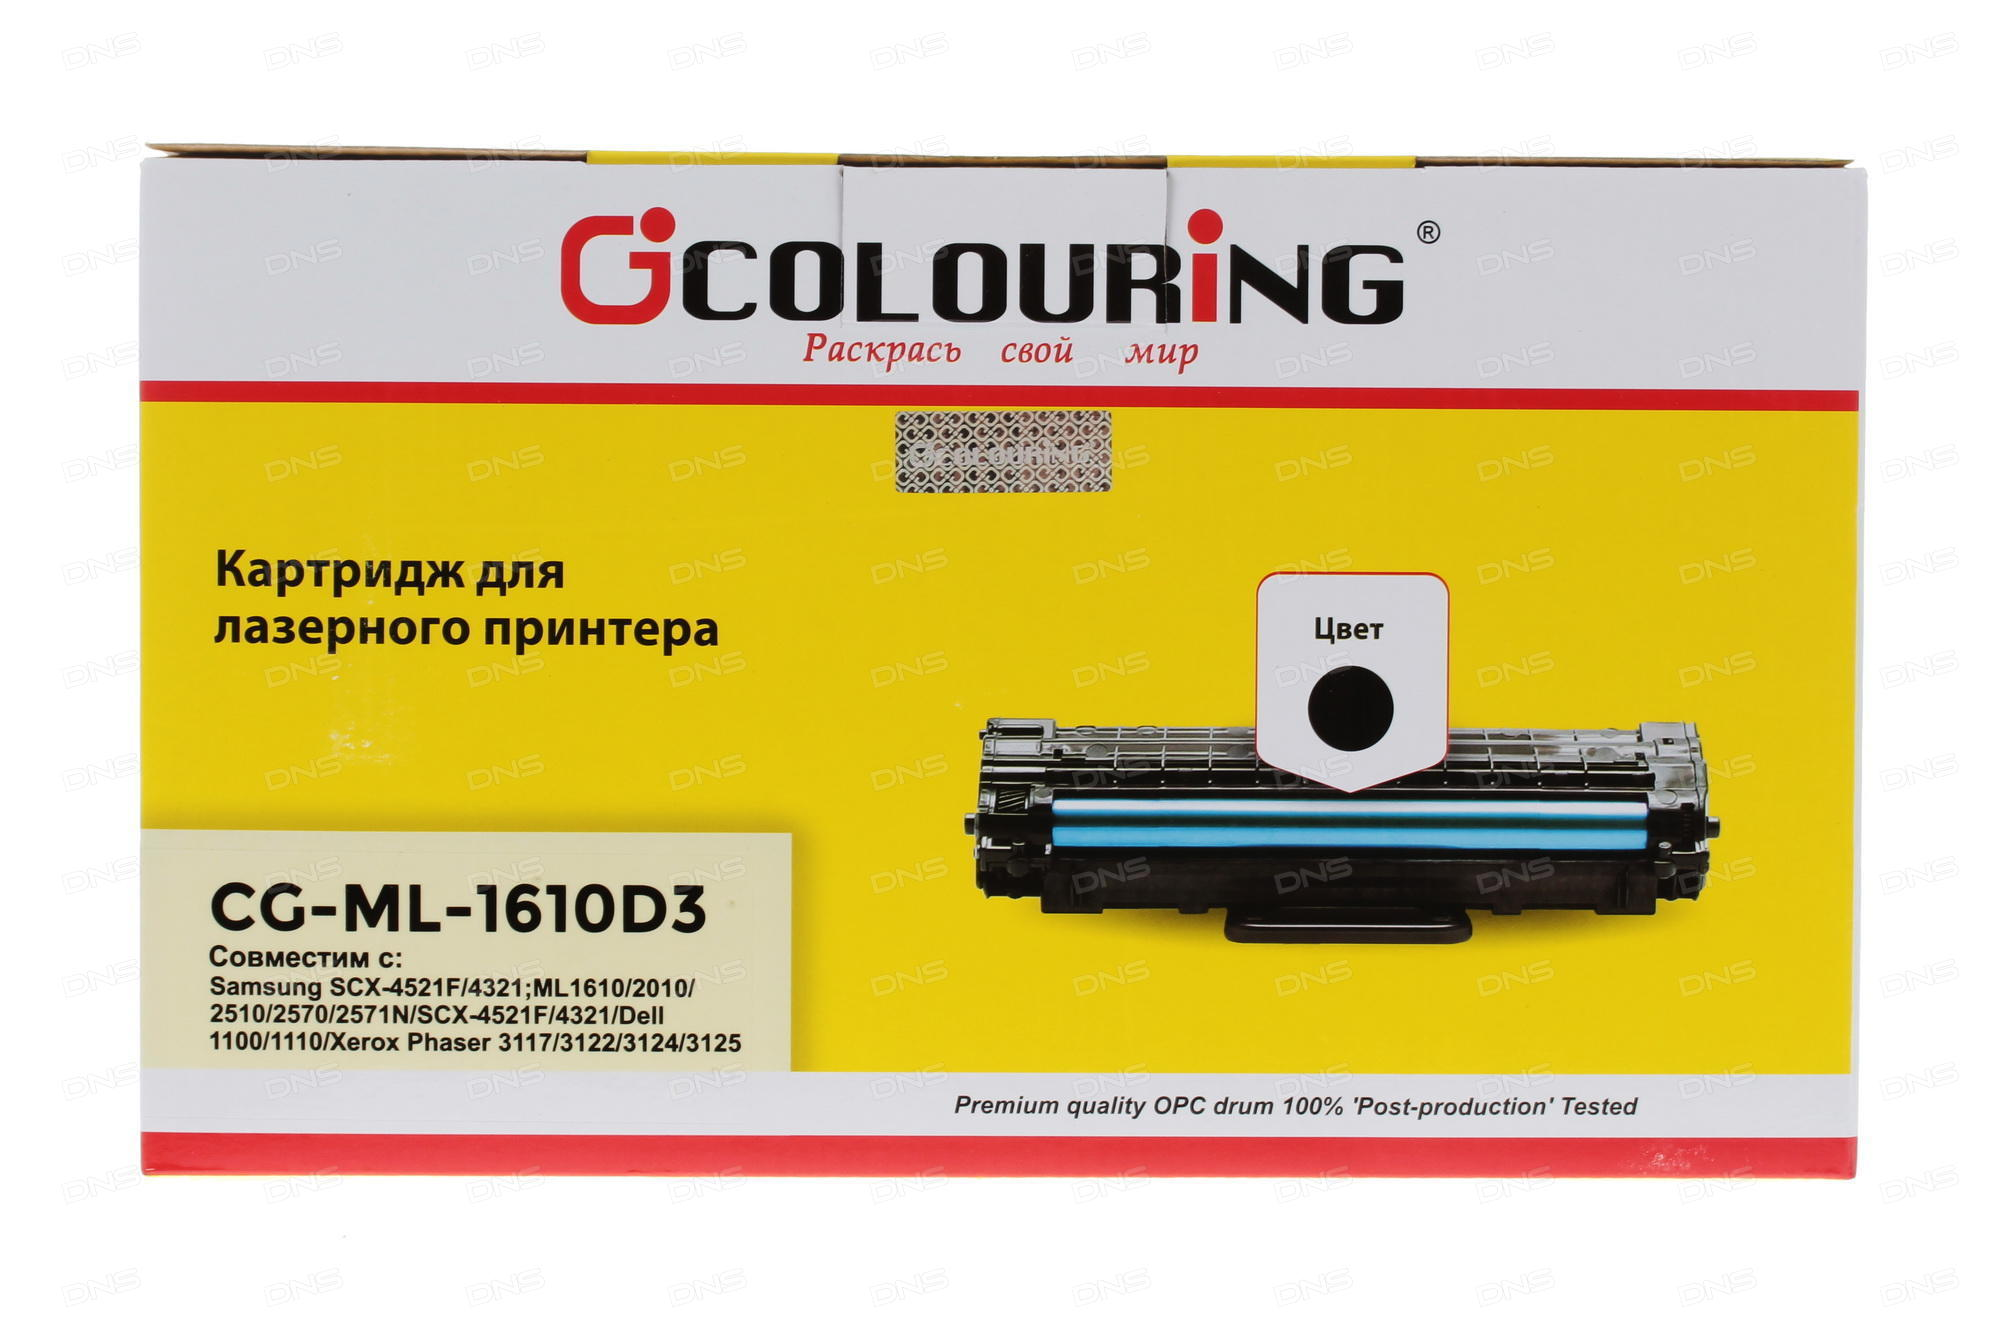 Картридж Colouring CG-CE505X/719 для HP LJ P2050/P2055/P2055D/P2055DN/Canon LBP 6300dn/6650dn/MF5840dn/5880dn/MF5940 6500 копий